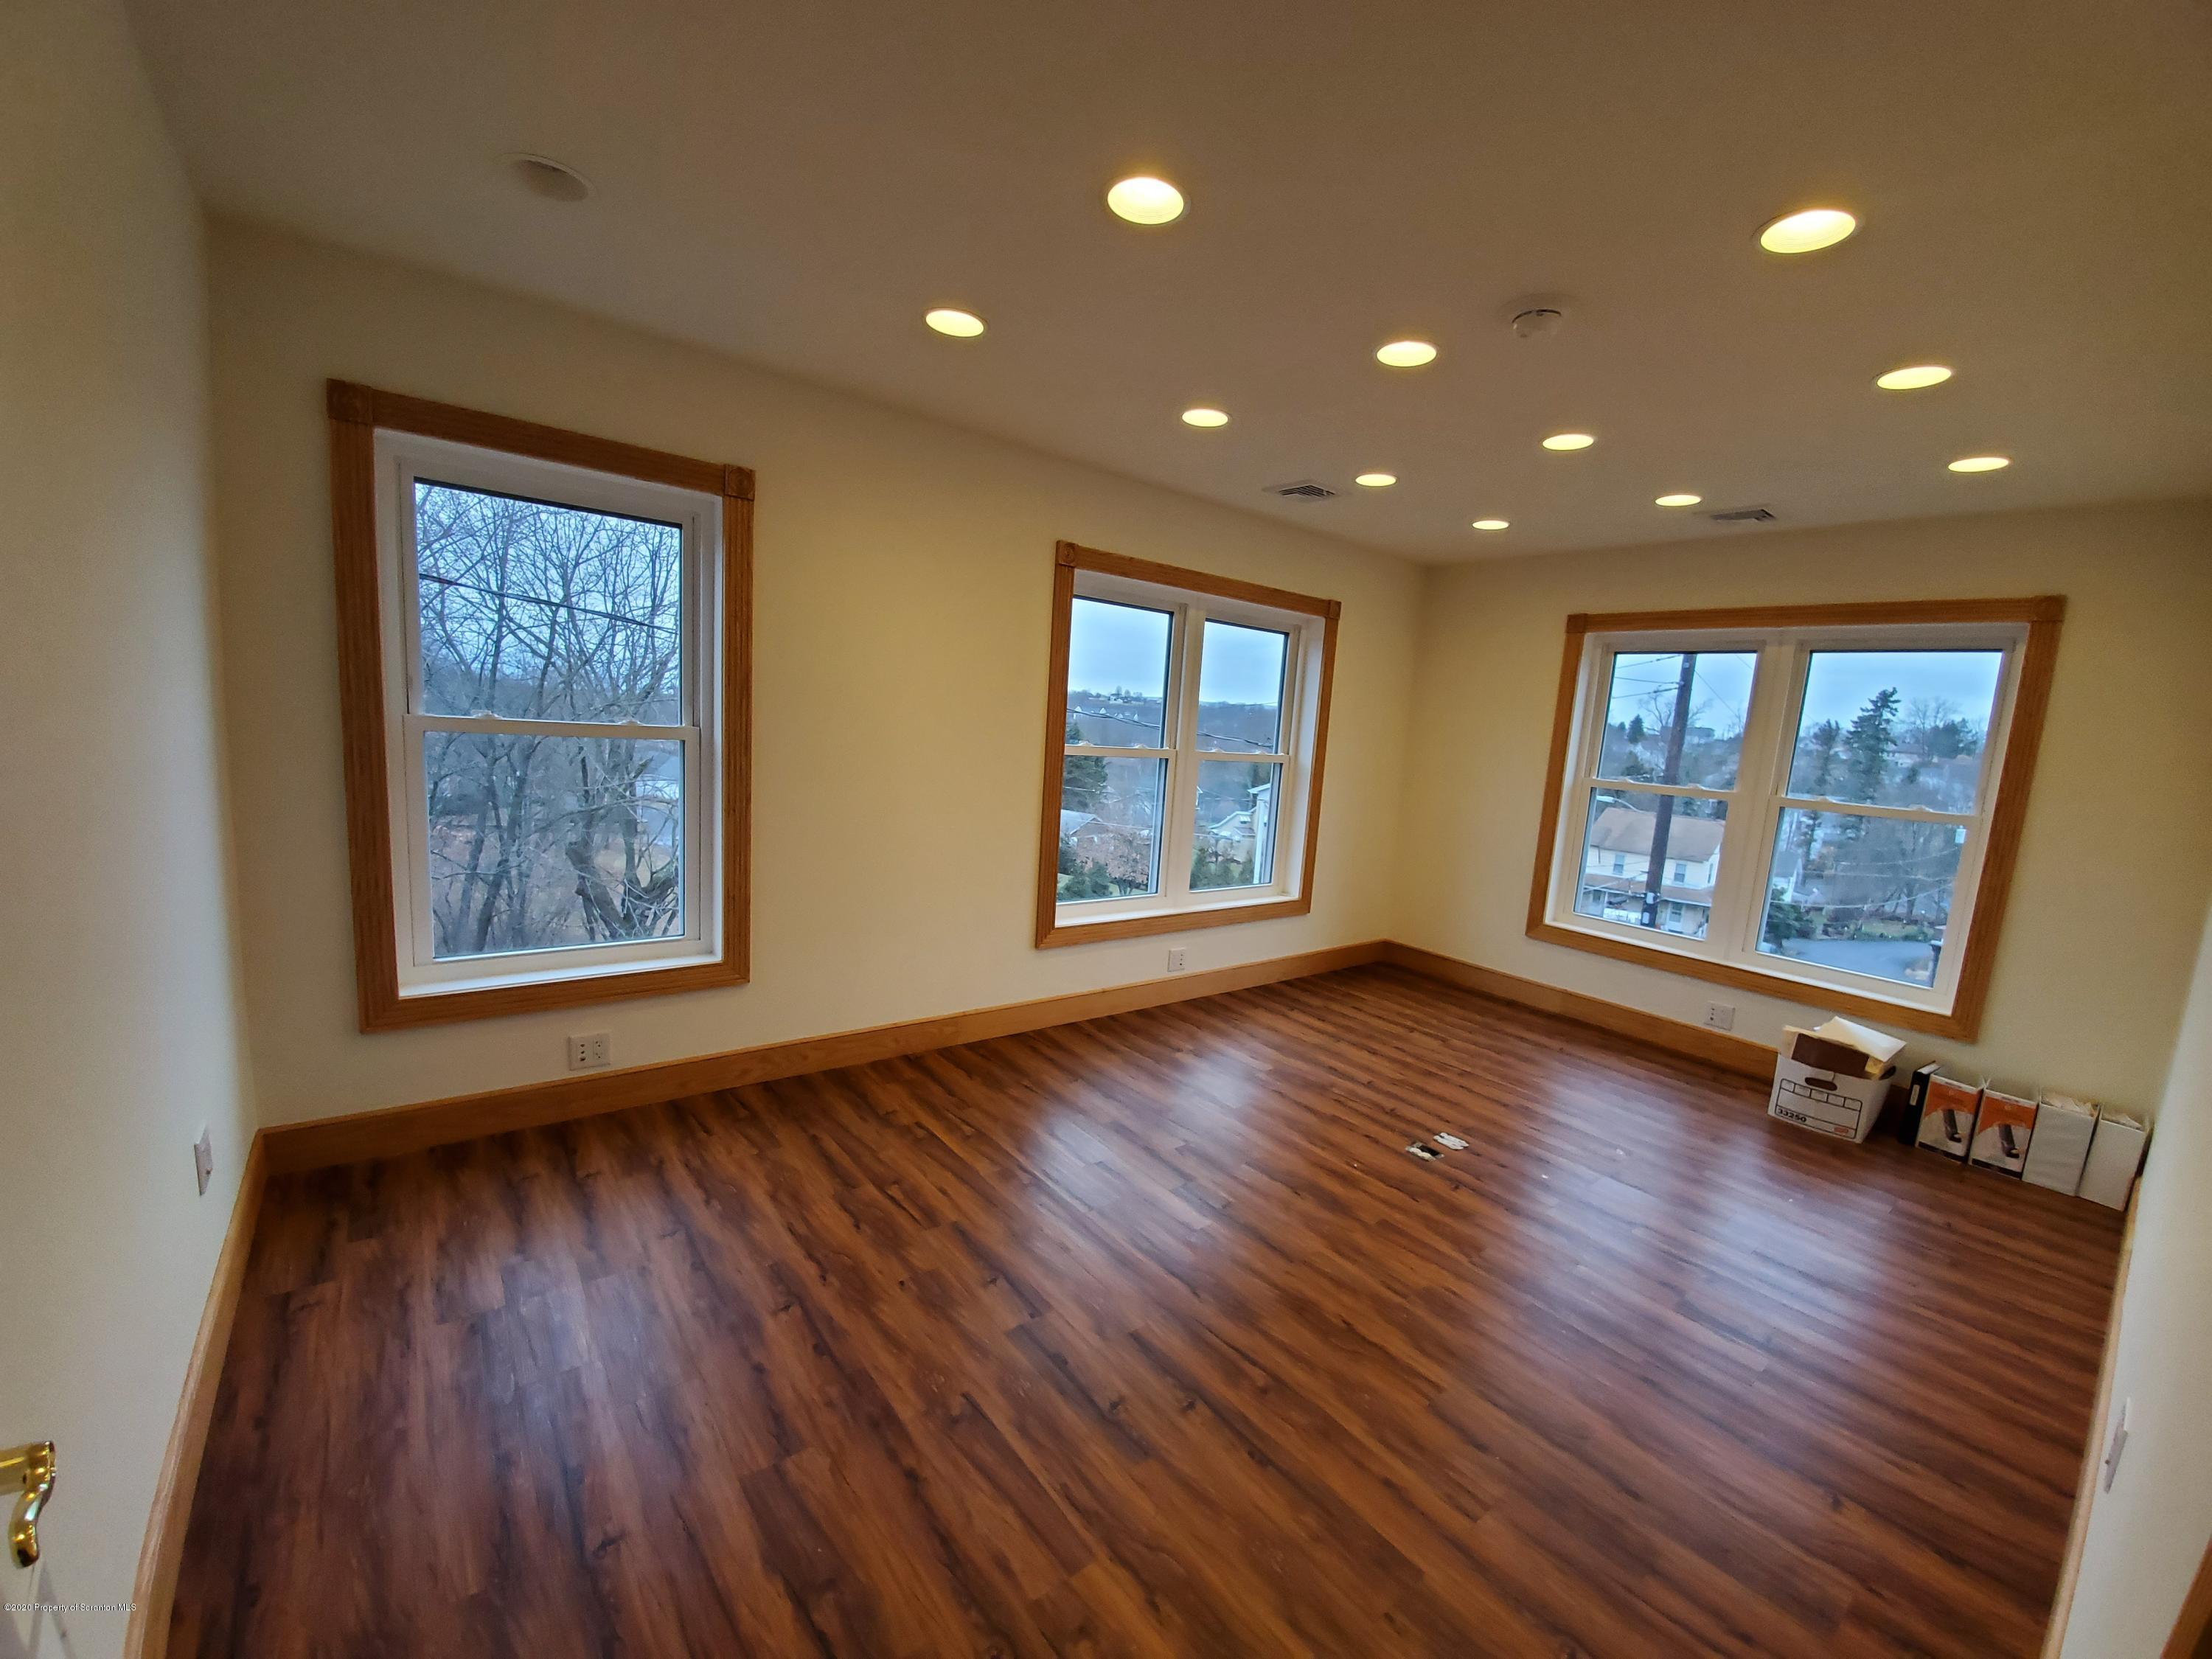 116 Monahan Ave, Dunmore, Pennsylvania 18512, ,1 BathroomBathrooms,Commercial,For Lease,Monahan,20-151